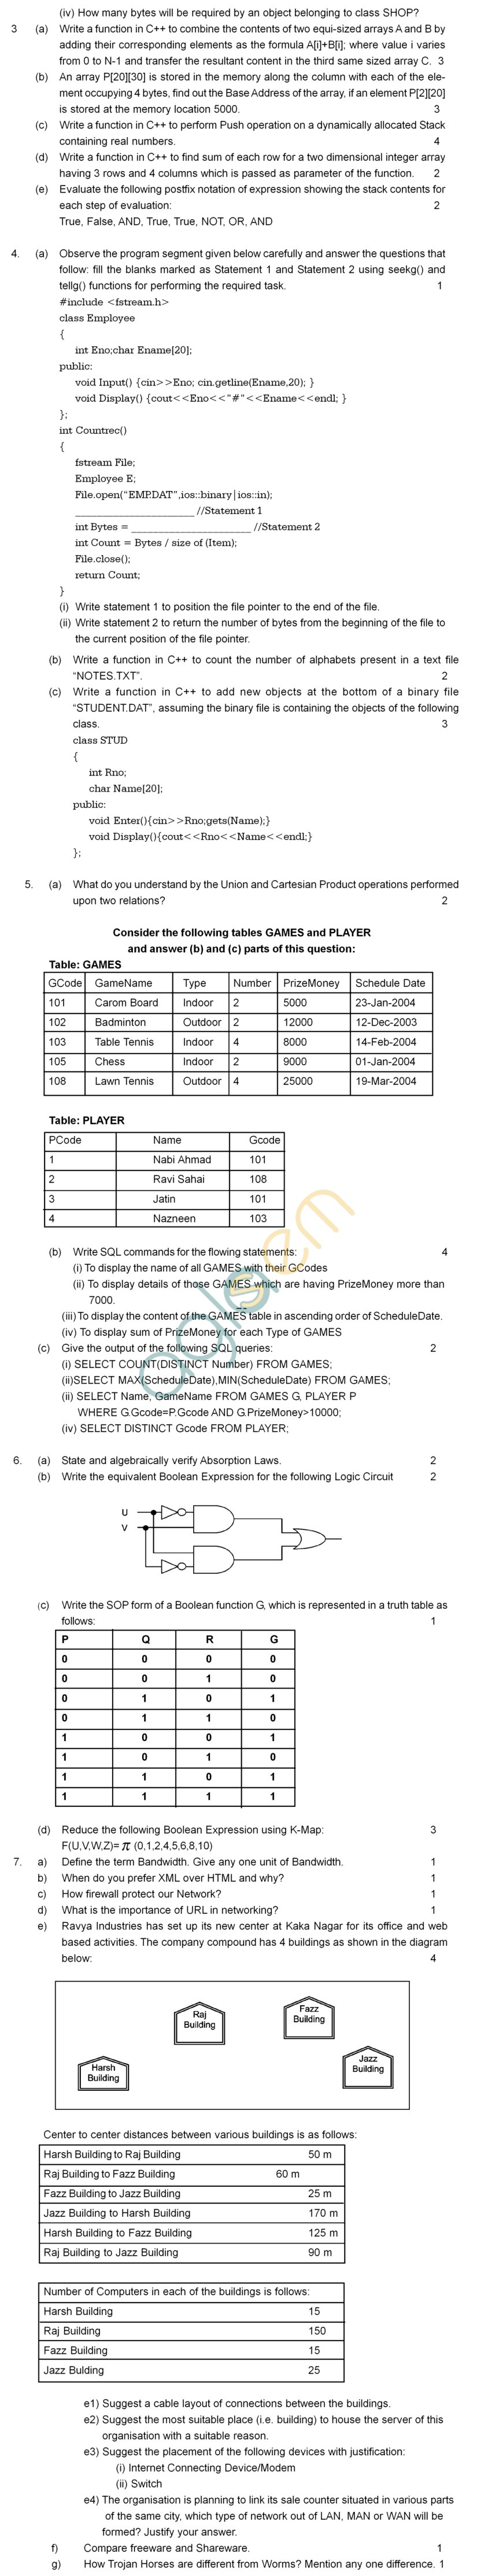 CBSE Board Exam 2013 Sample Question Papers for Computer Science